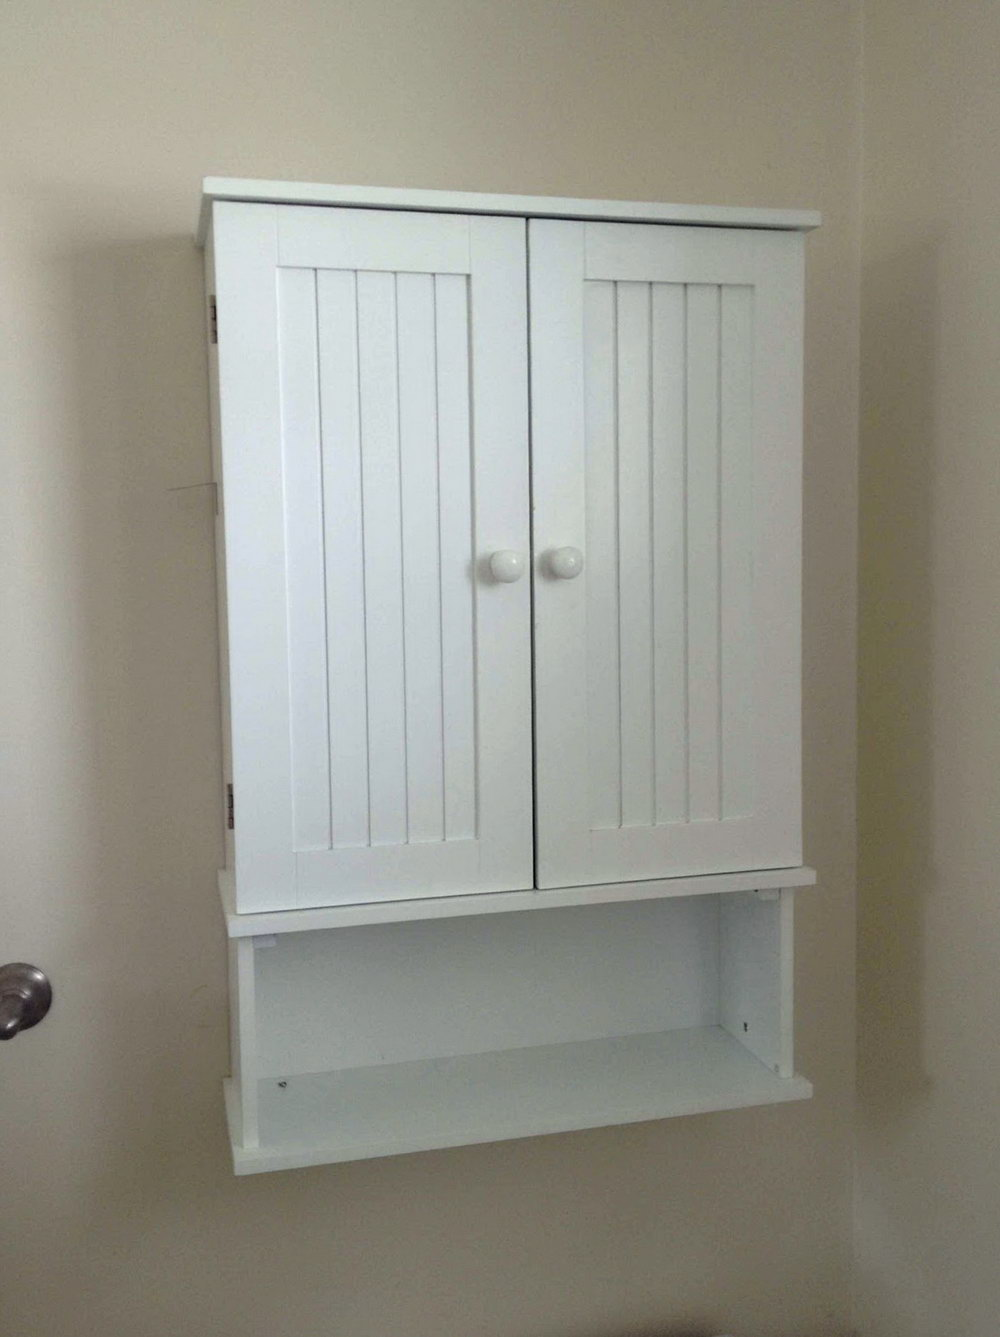 Bathroom Storage Wall Cabinet In White